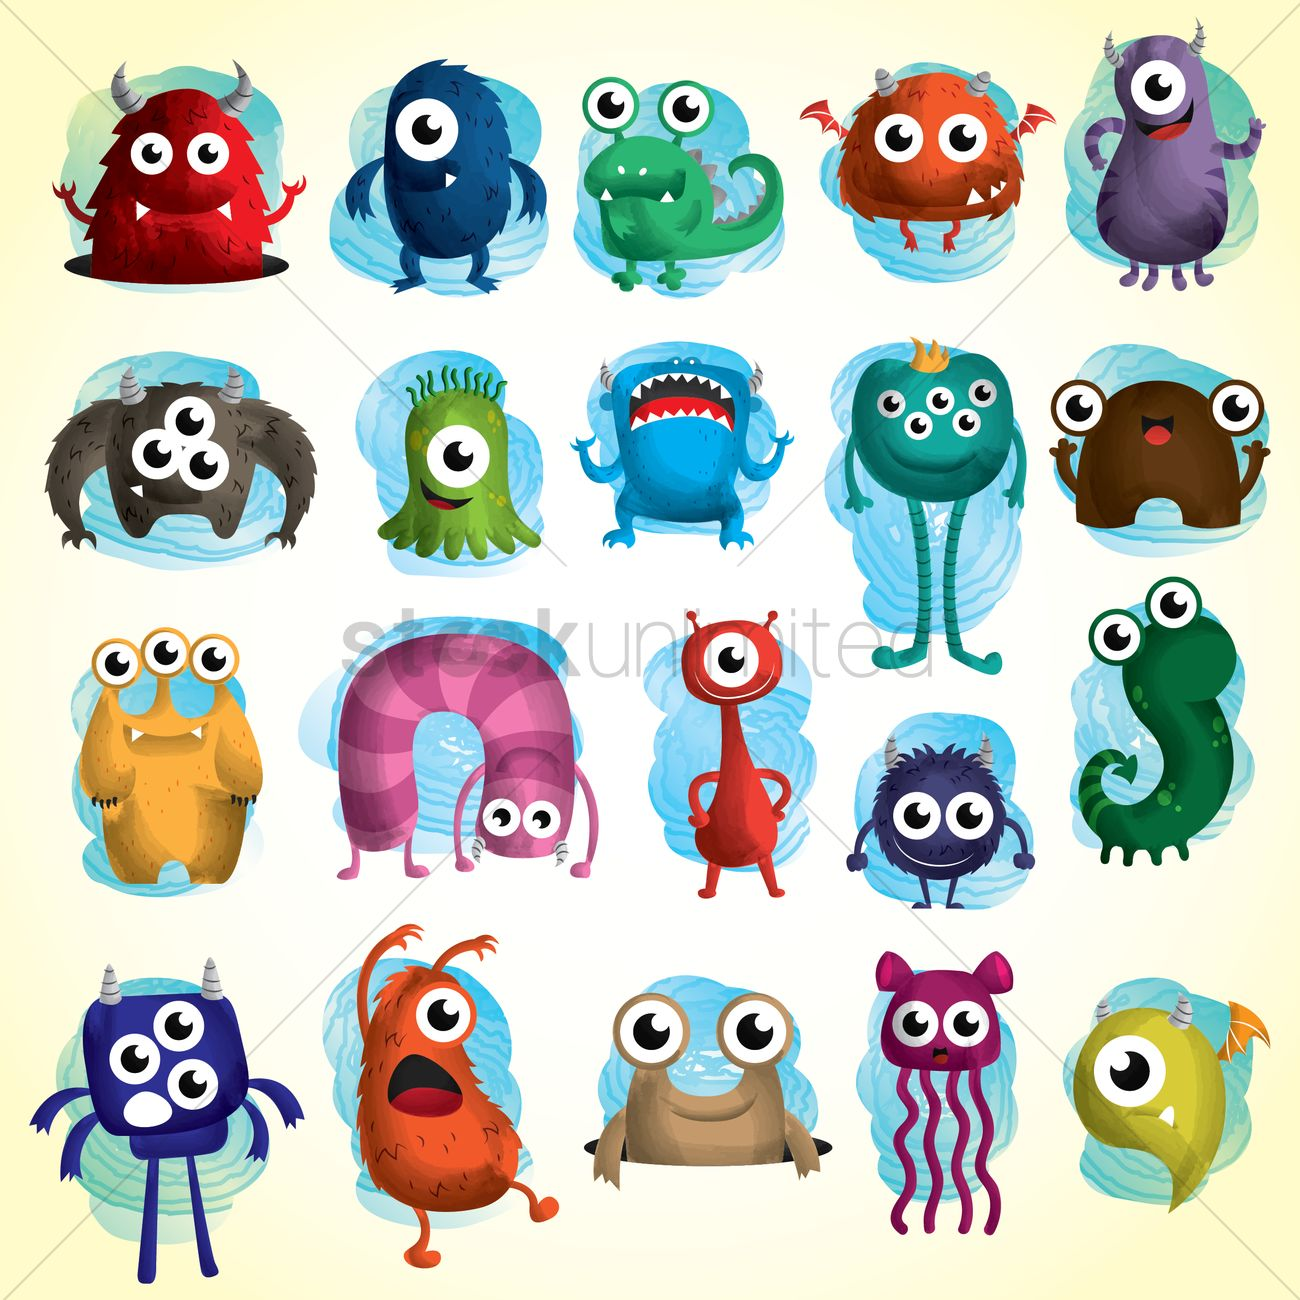 Set of cute monster icons Vector Image - 1531522 ...